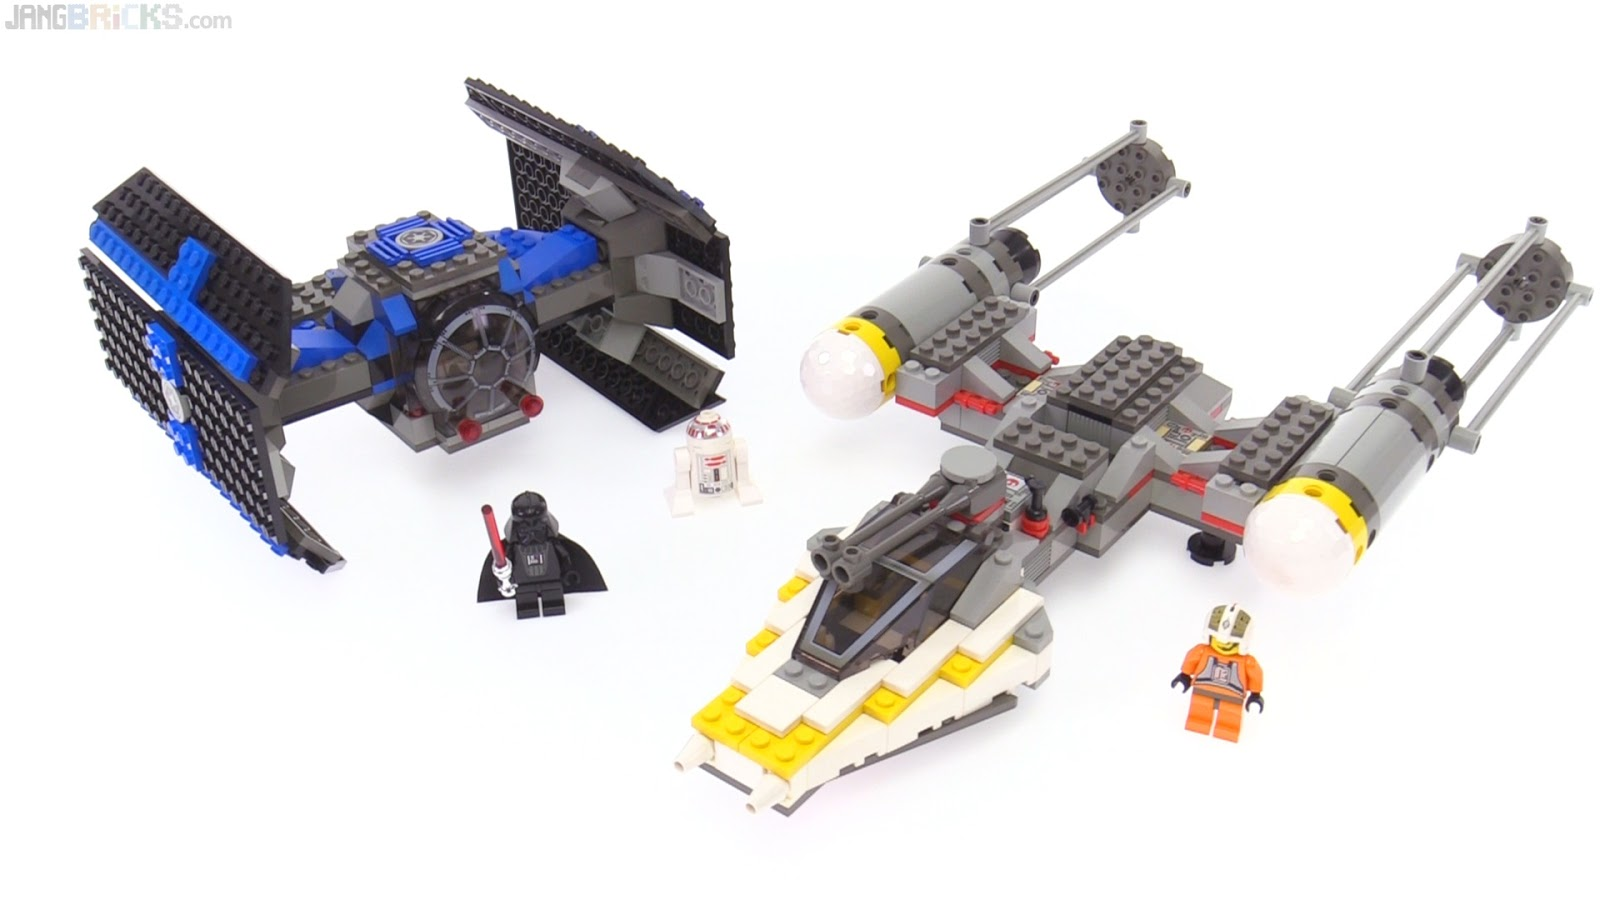 LEGO Star Wars TIE Fighter & Y-Wing from 1999 reviewed! 7150